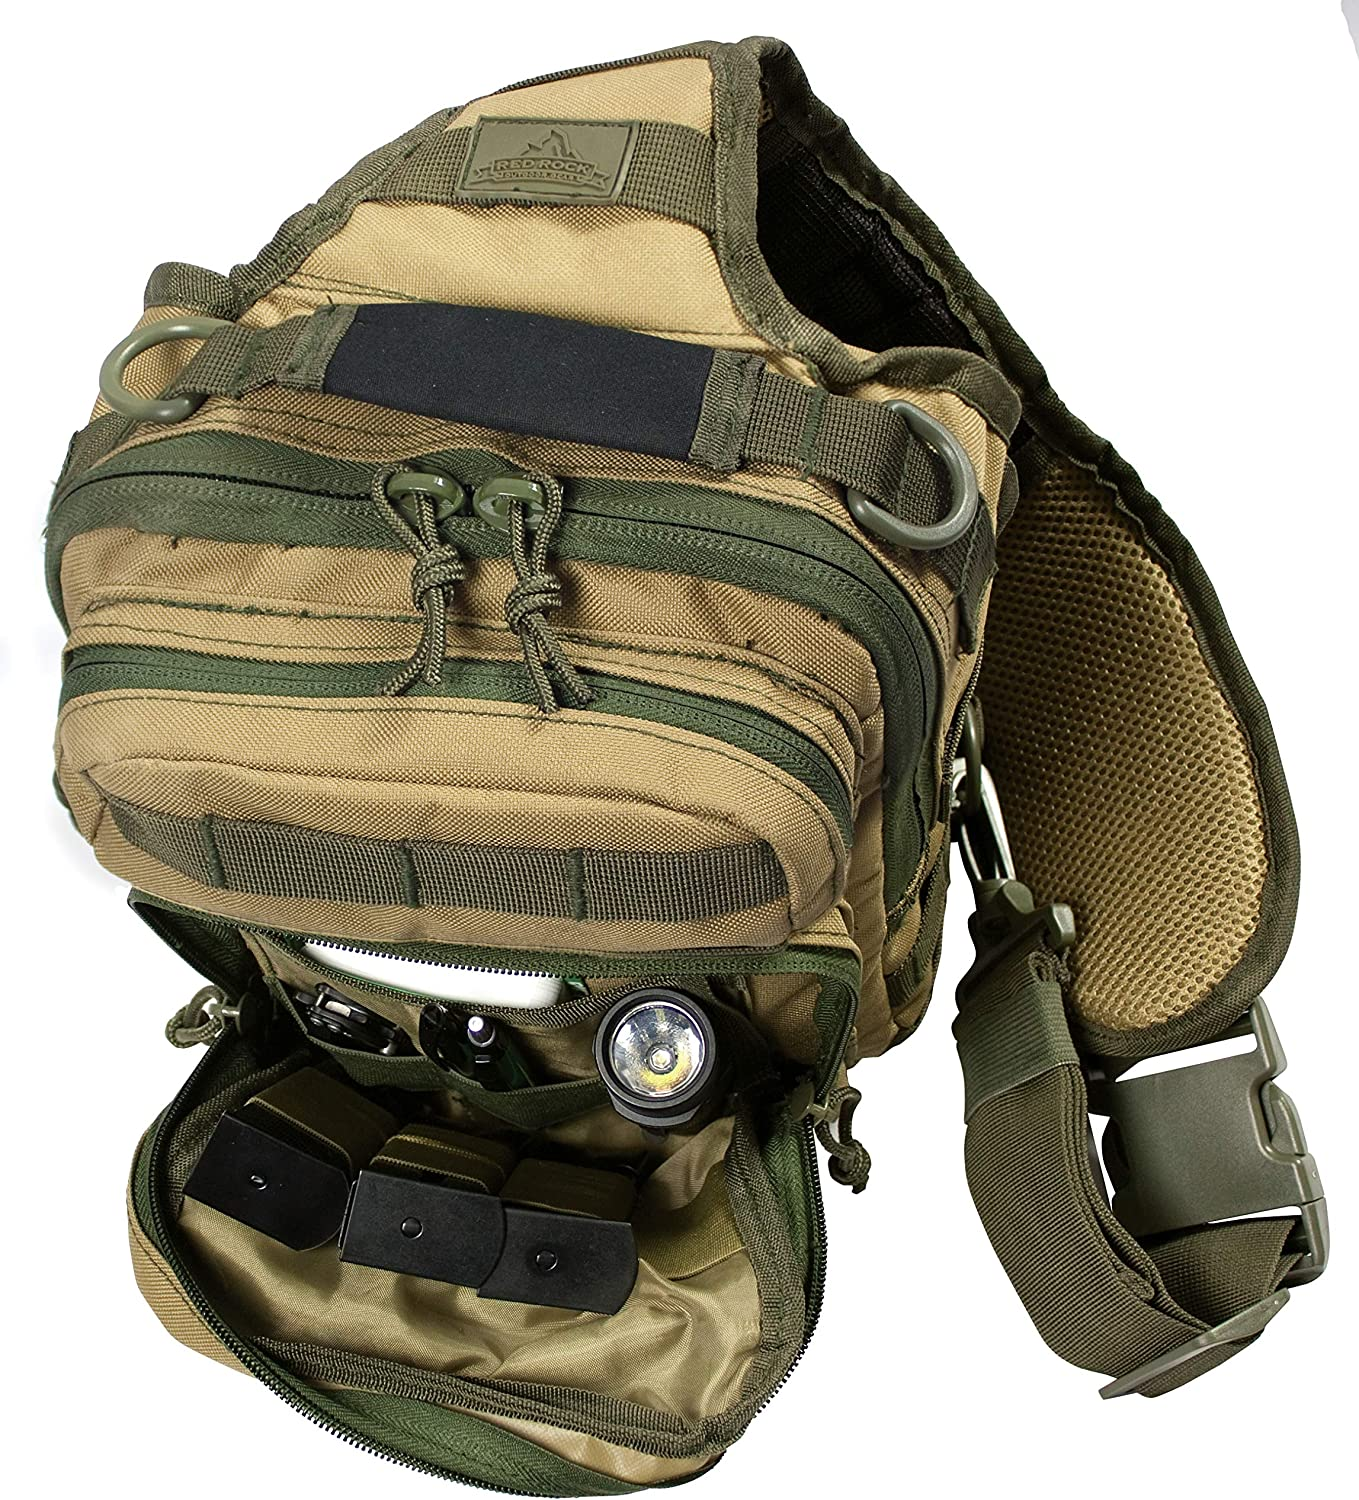 Outdoor Gear Red Rock Rover Sling Pack: Amazon.es: Deportes y aire ...